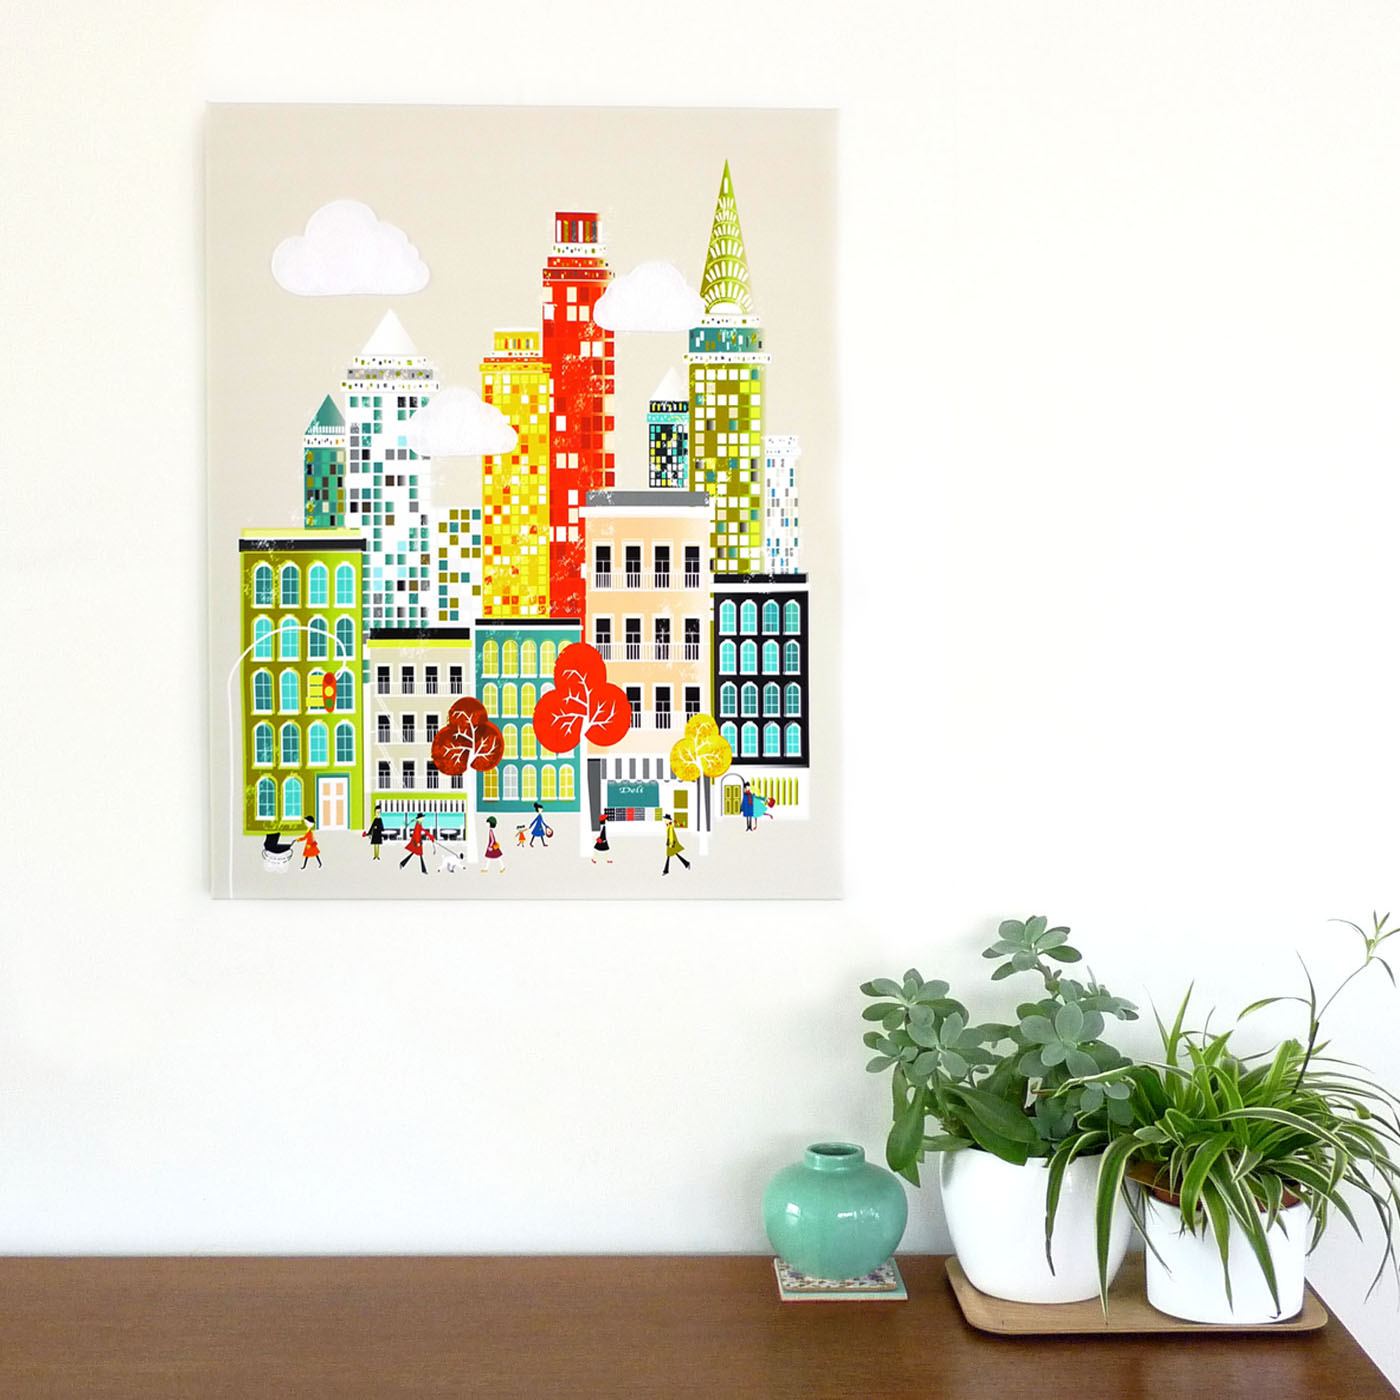 High Lights Of New York Skyline Canvas Wall Art: New York Wall Art, Manhattan Skyline, Framed Canvas Wall